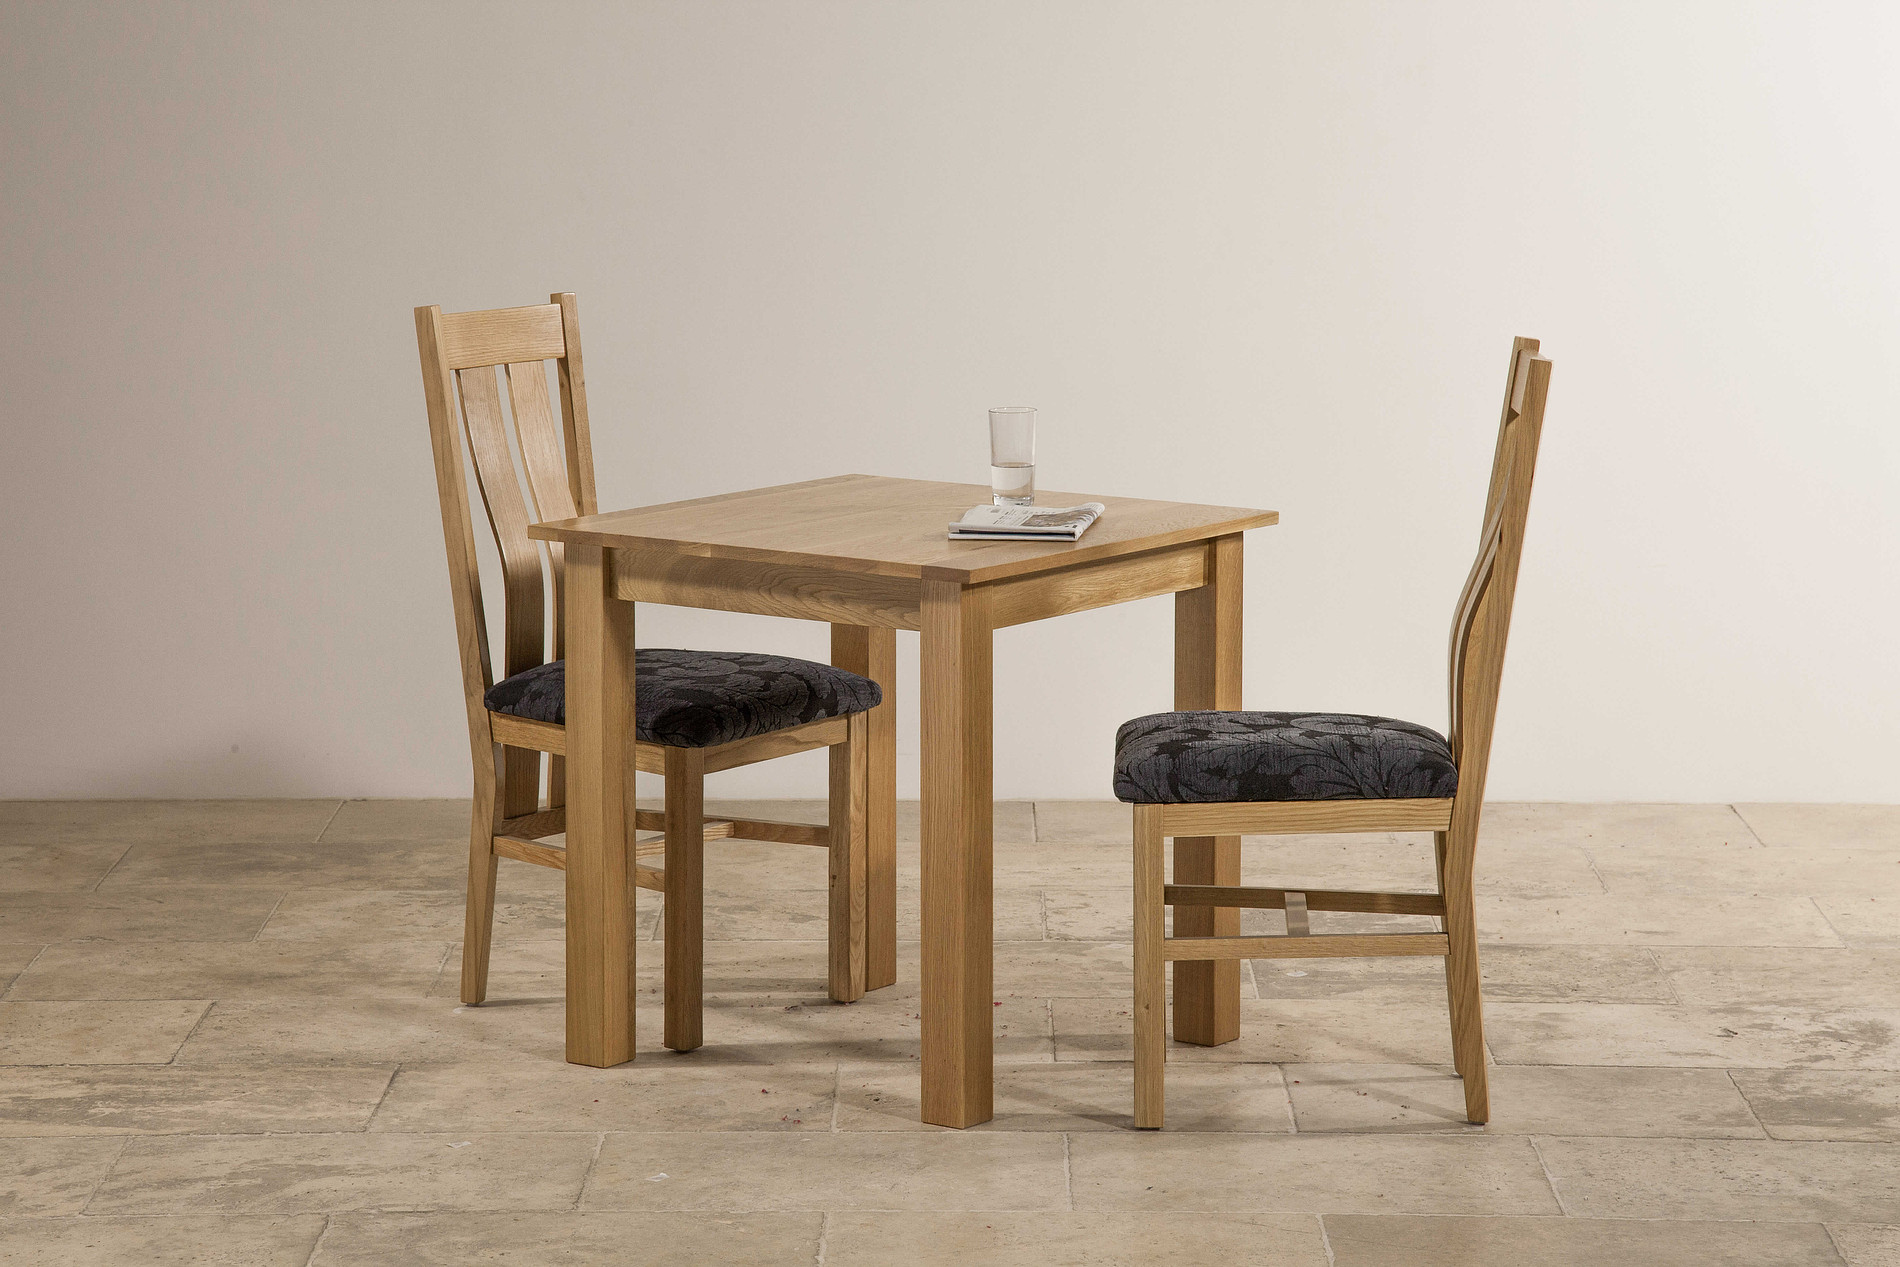 6 Ft Square Dining Table Hudson 2ft 6 Quot X 2ft 6 Quot Natural Solid Oak Square Dining